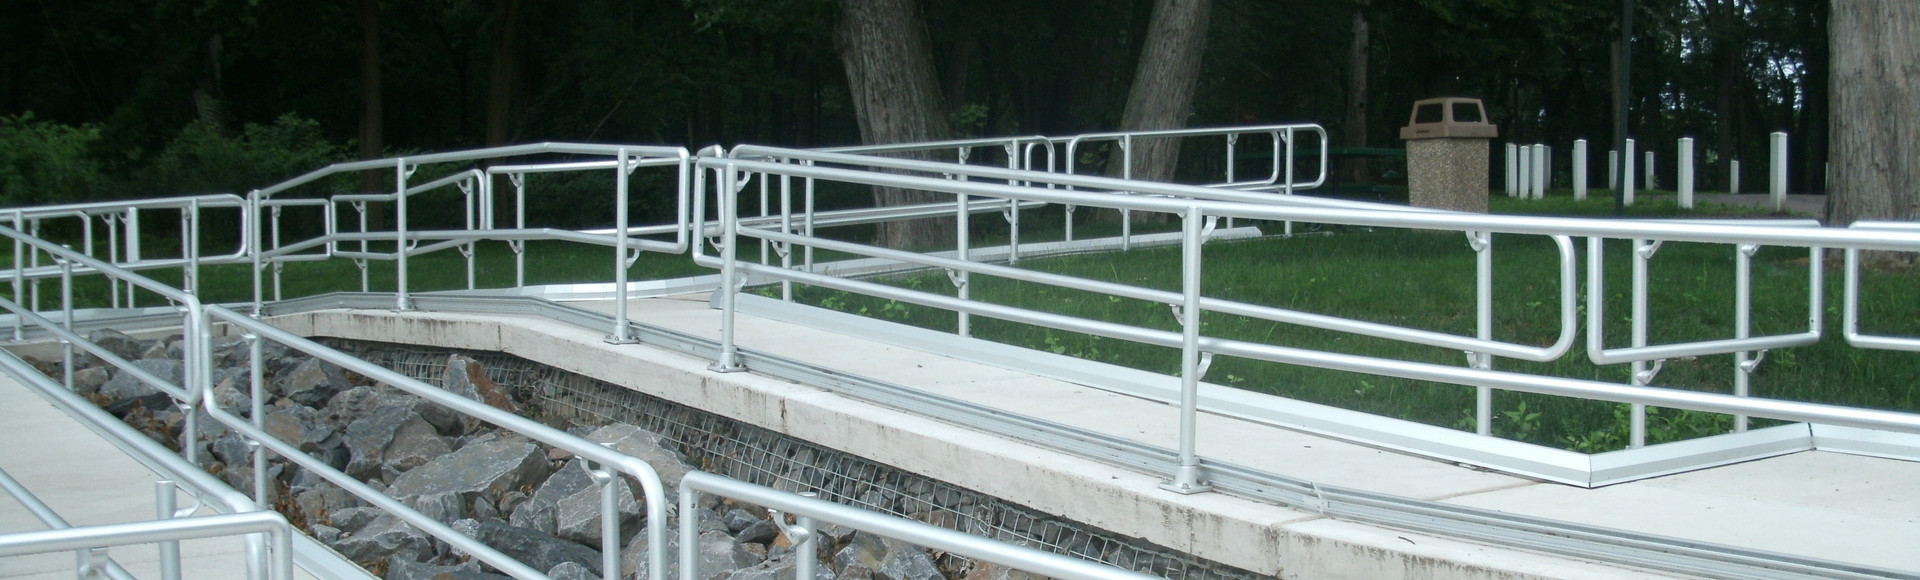 Access Ramp at Riverfront Park